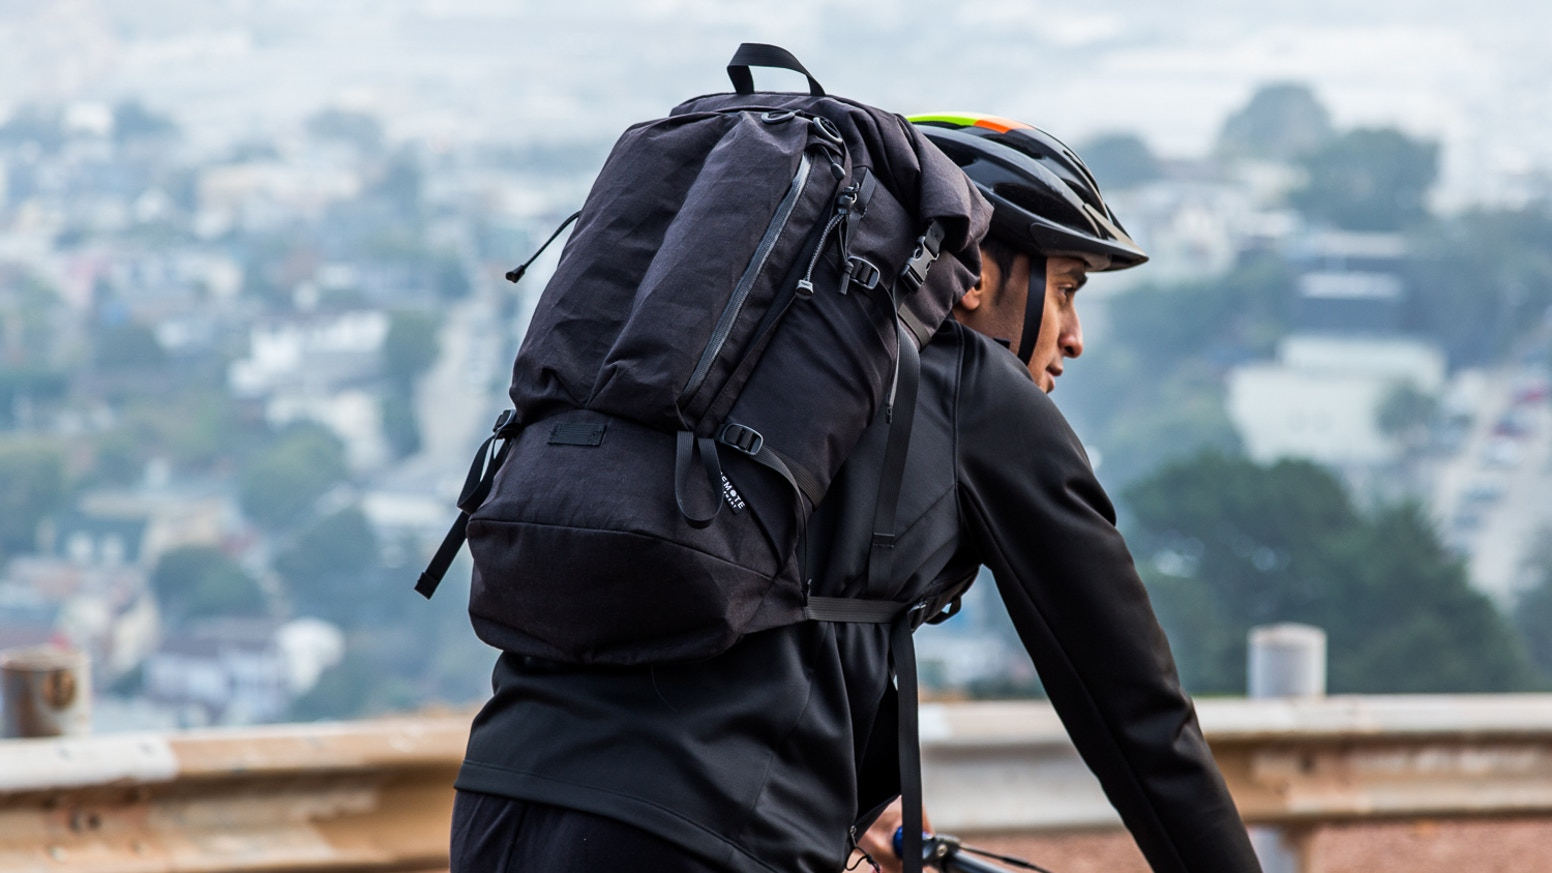 The performance backpack designed for everyday.